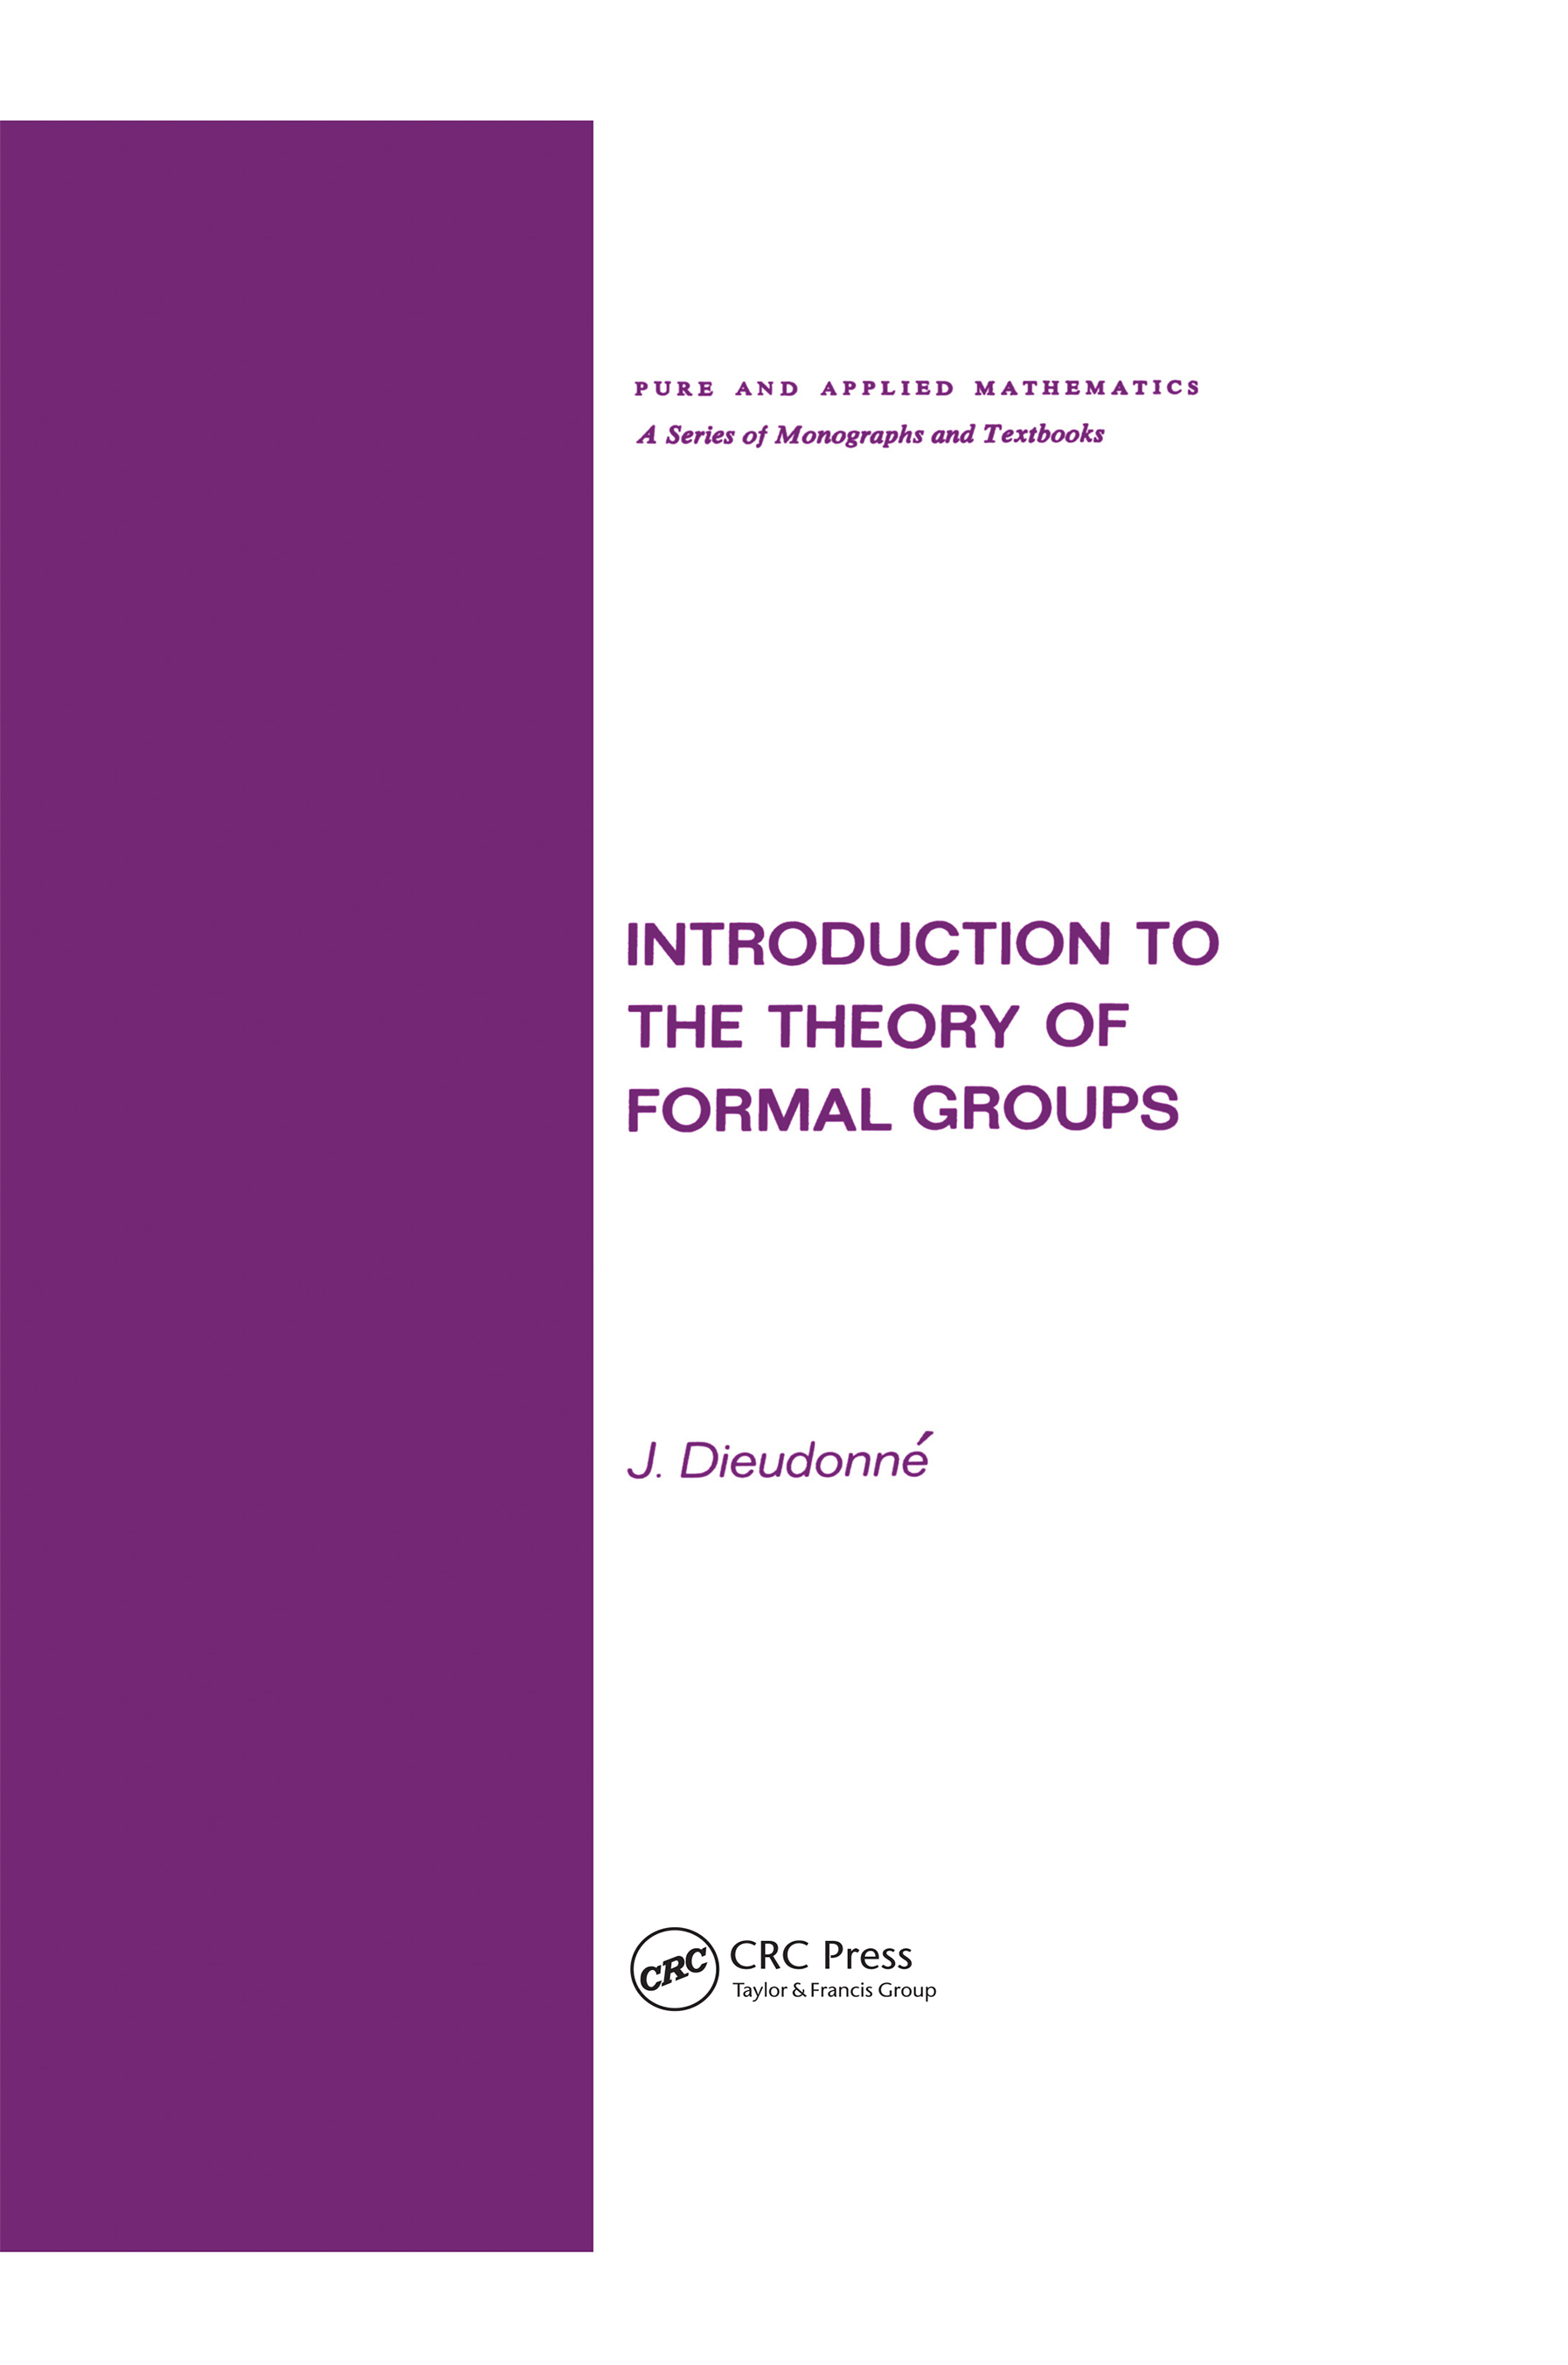 Introduction to the Theory of Formal Groups